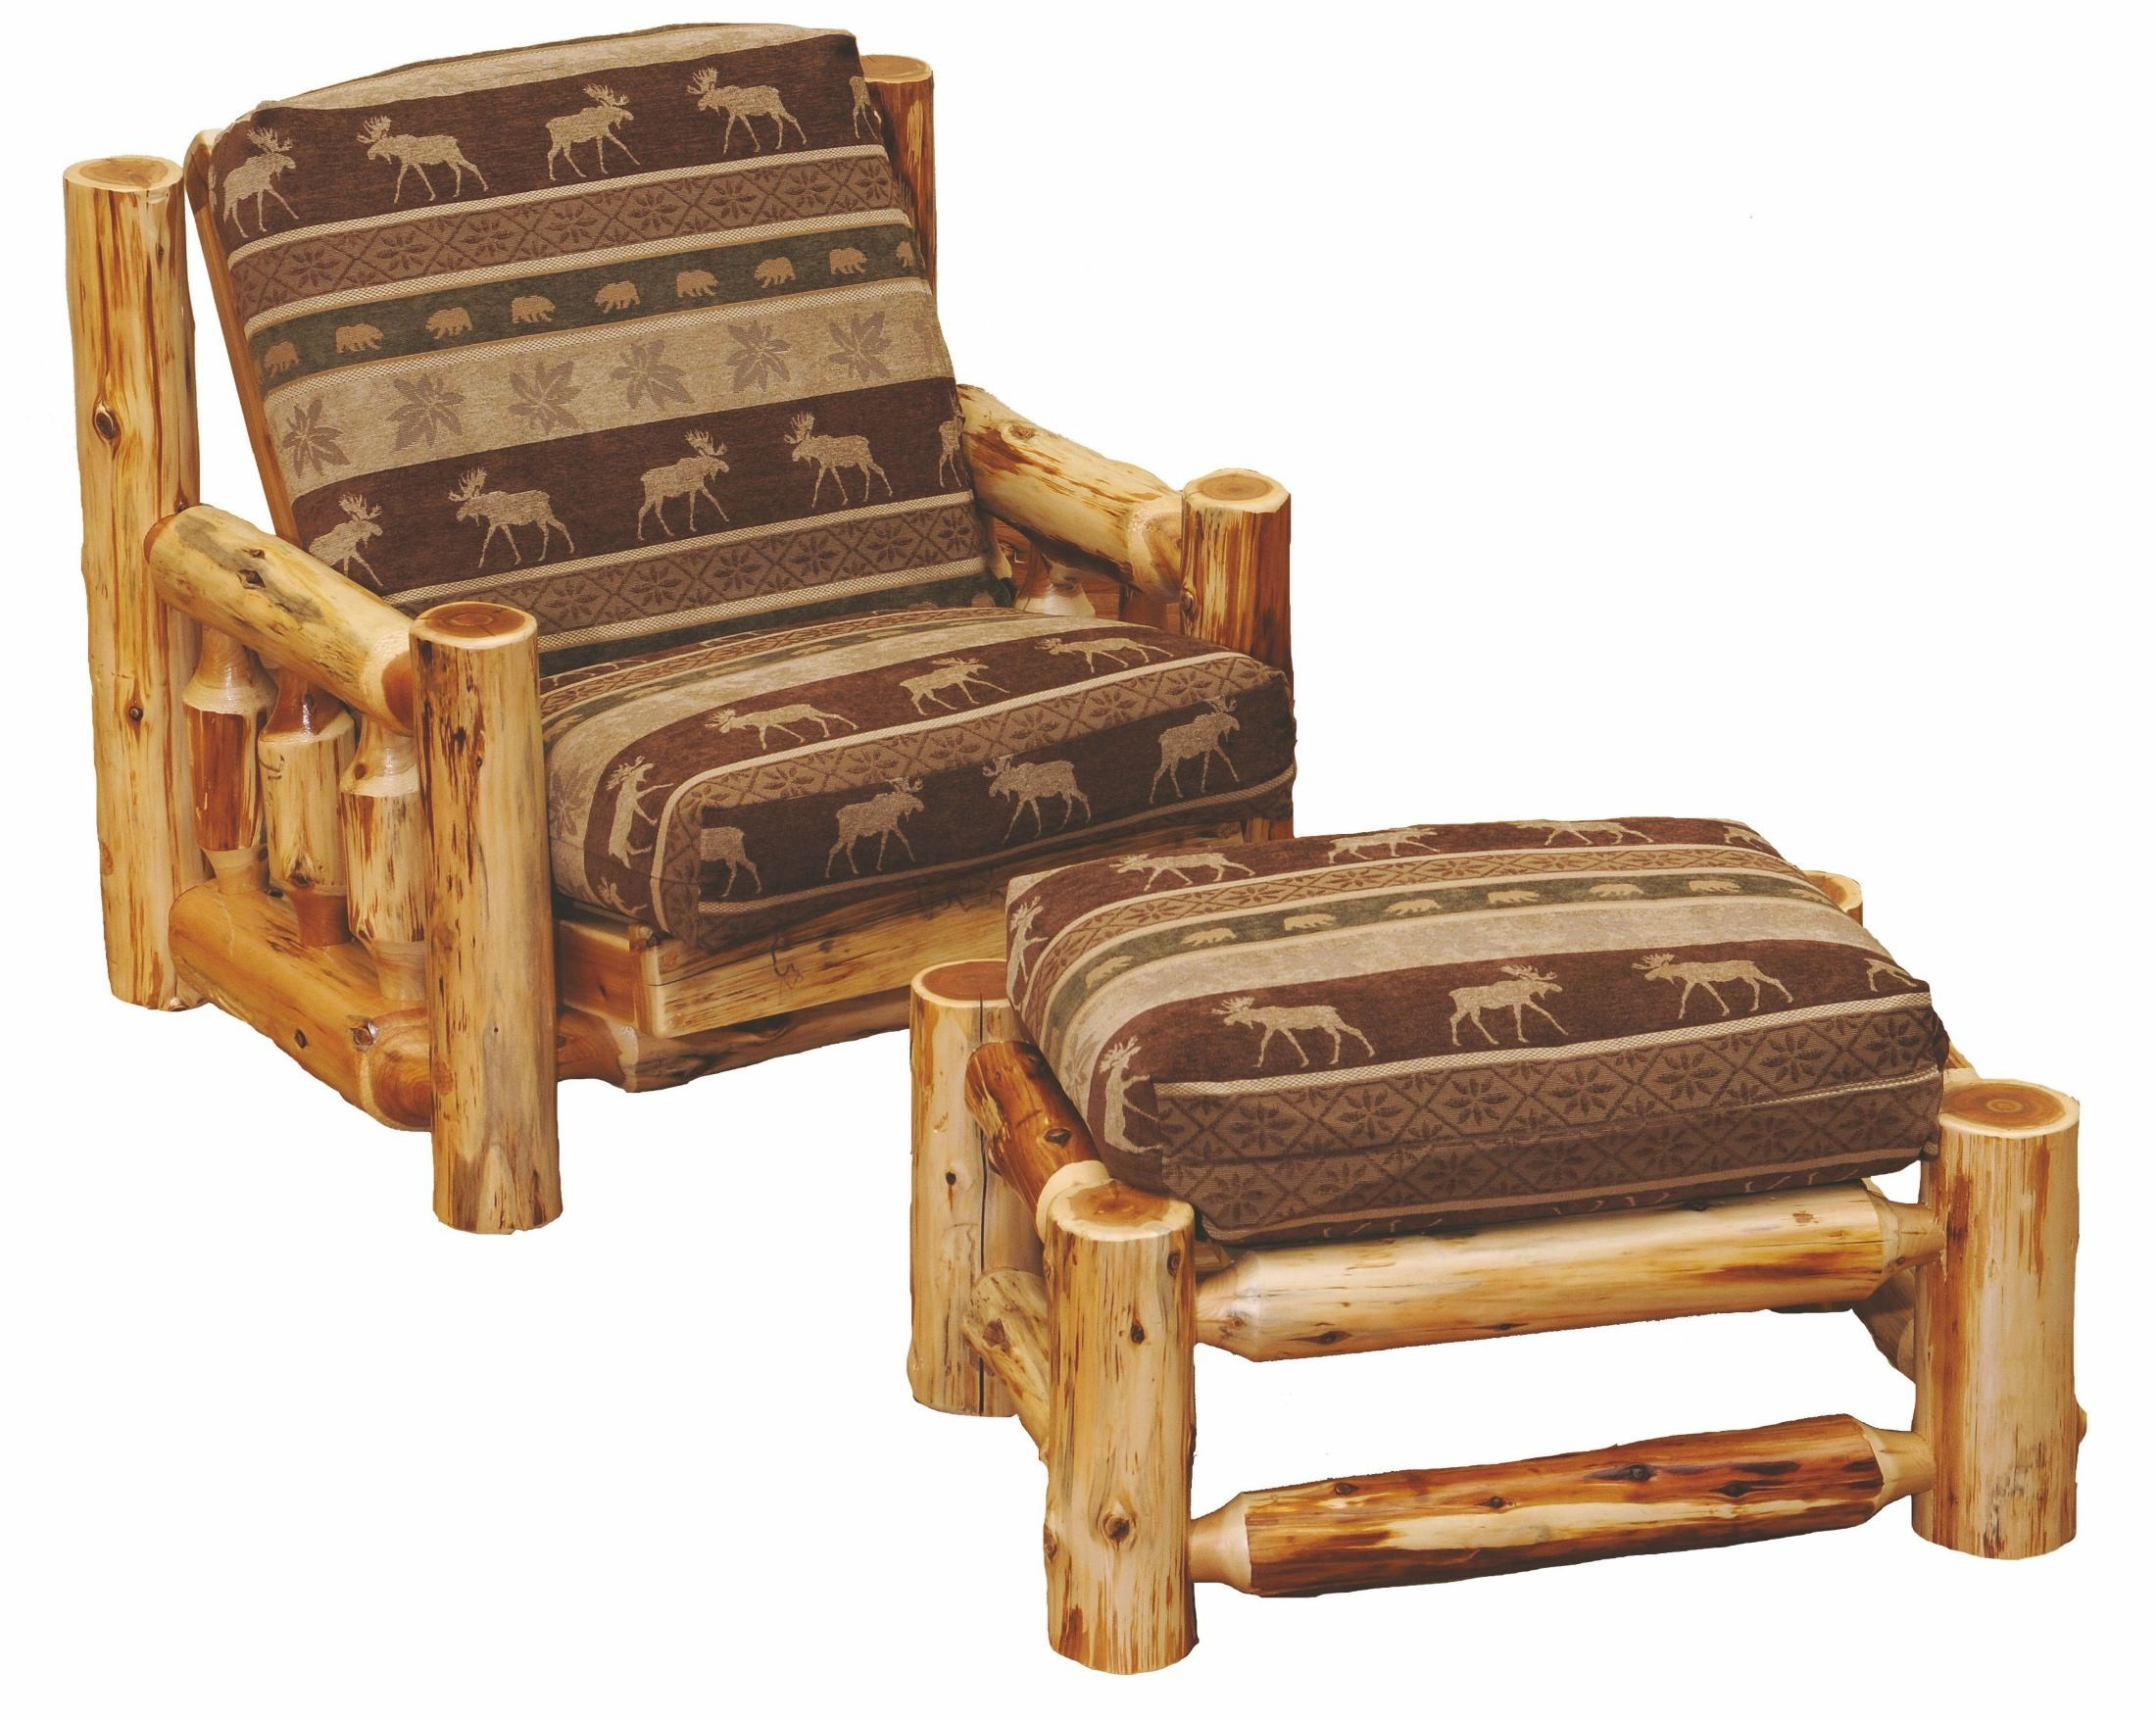 Cedar futon chair with ottoman from fireside lodge 13160 for Chair with ottoman